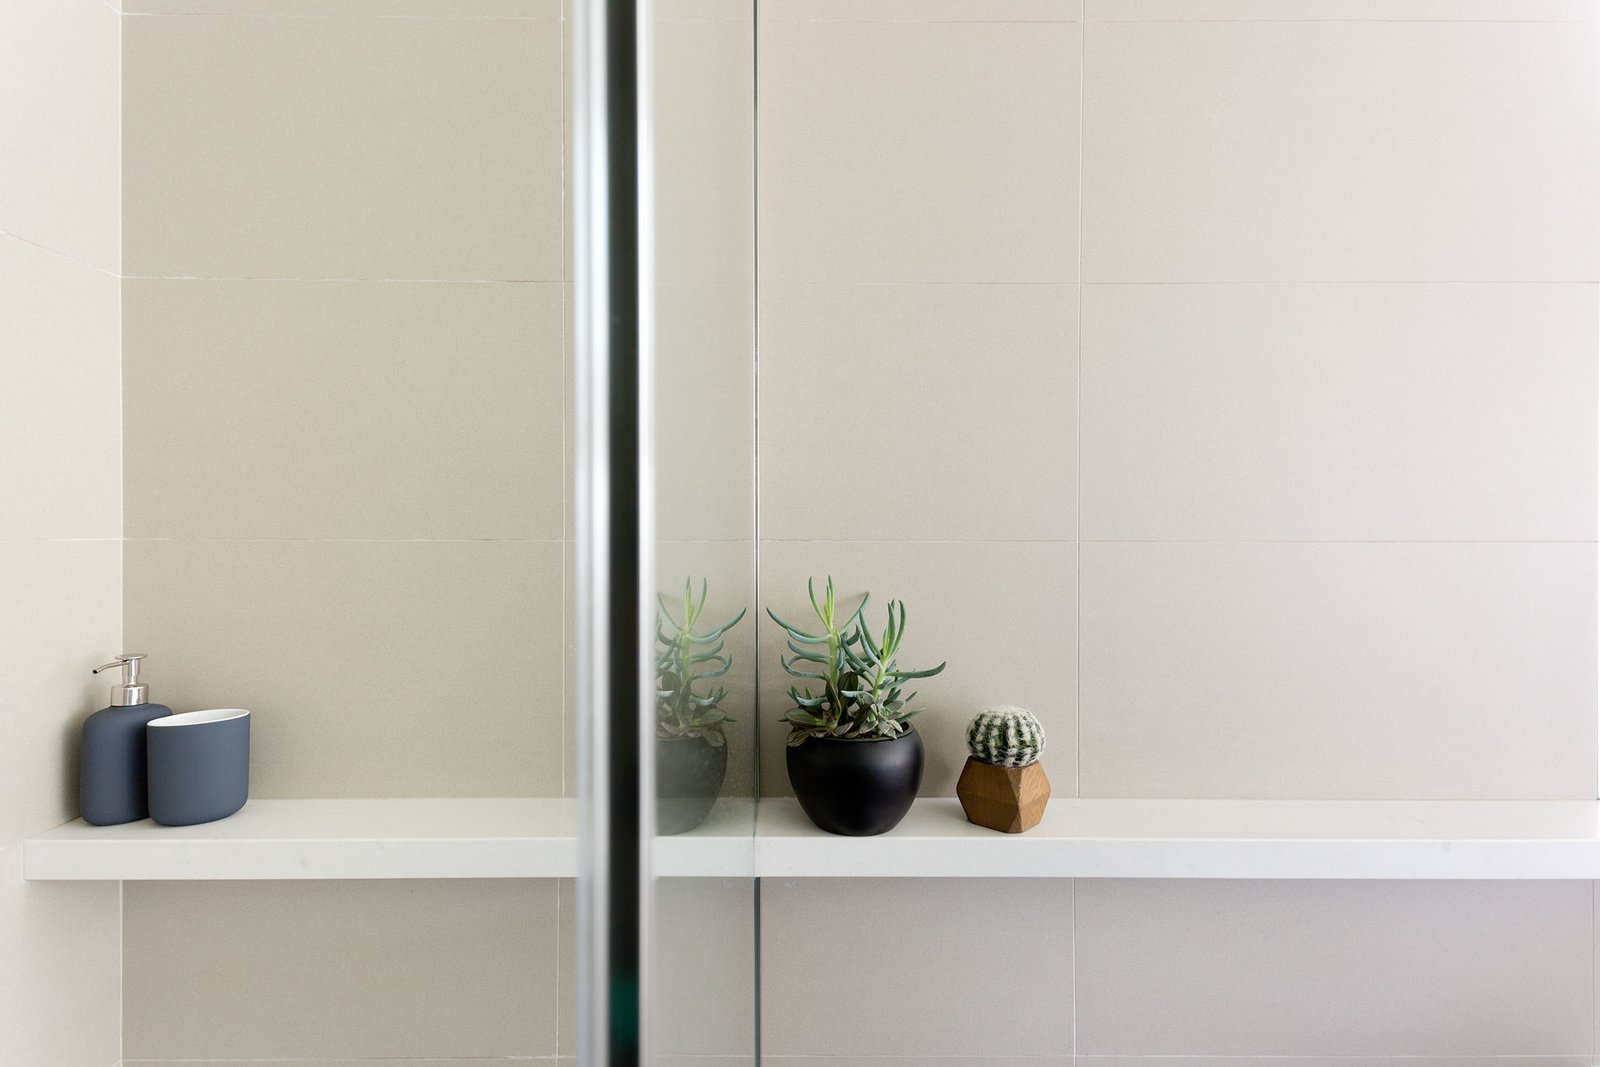 Engineered Quartz Counter, Quartzite Counter, Porcelain Tile Wall, Enclosed Shower, and Outdoor Master Bath Detail Shelf  Photo 7 of 15 in What's the Best Way to Save Space in a Small Bathroom? from Del Rey Residence